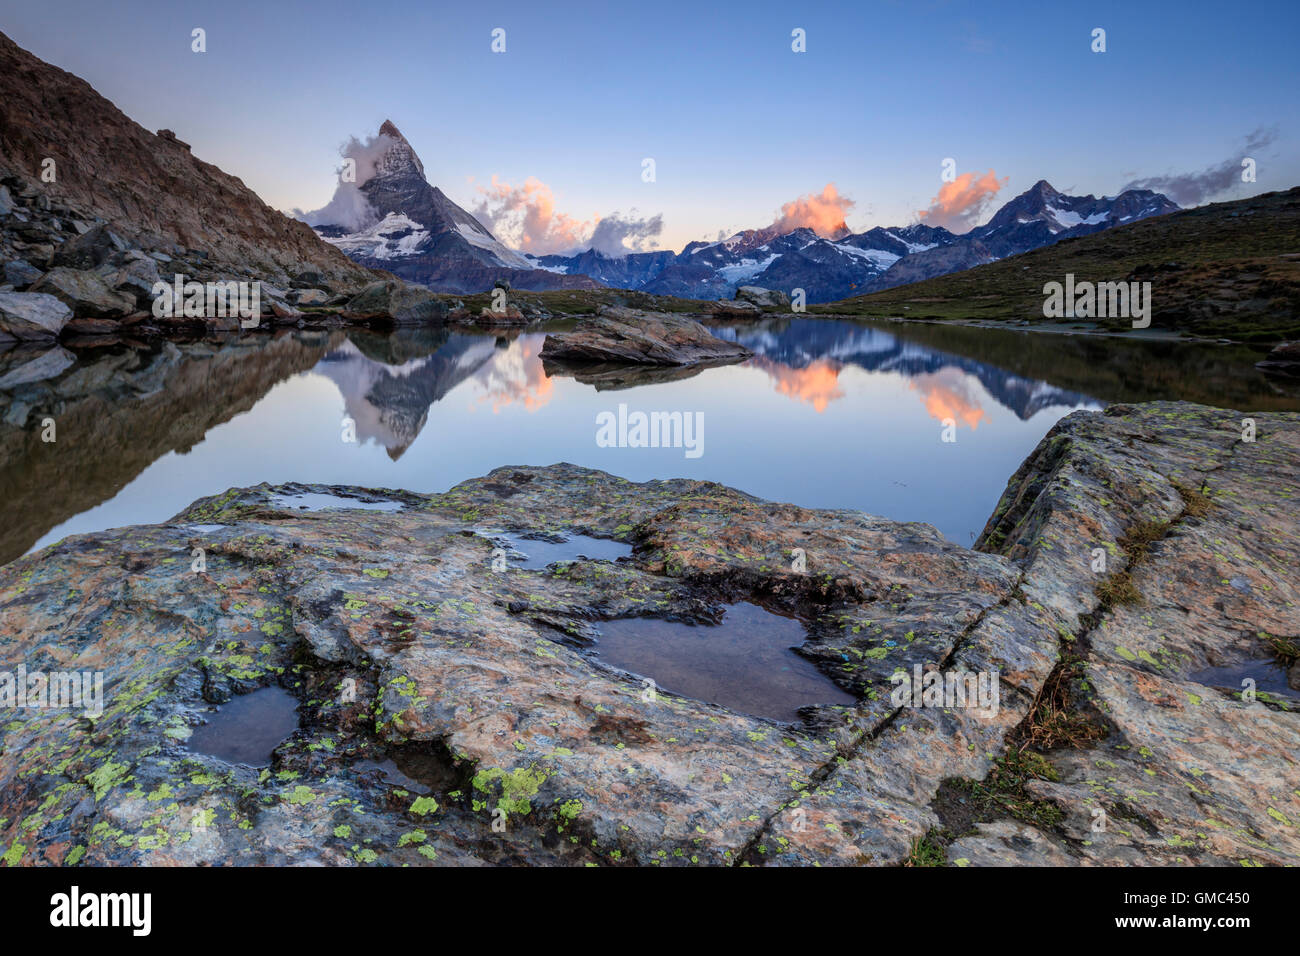 Matterhorn reflected in Lake Stellisee at dawn Zermatt Pennine Alps Canton of Valais Switzerland Europe - Stock Image